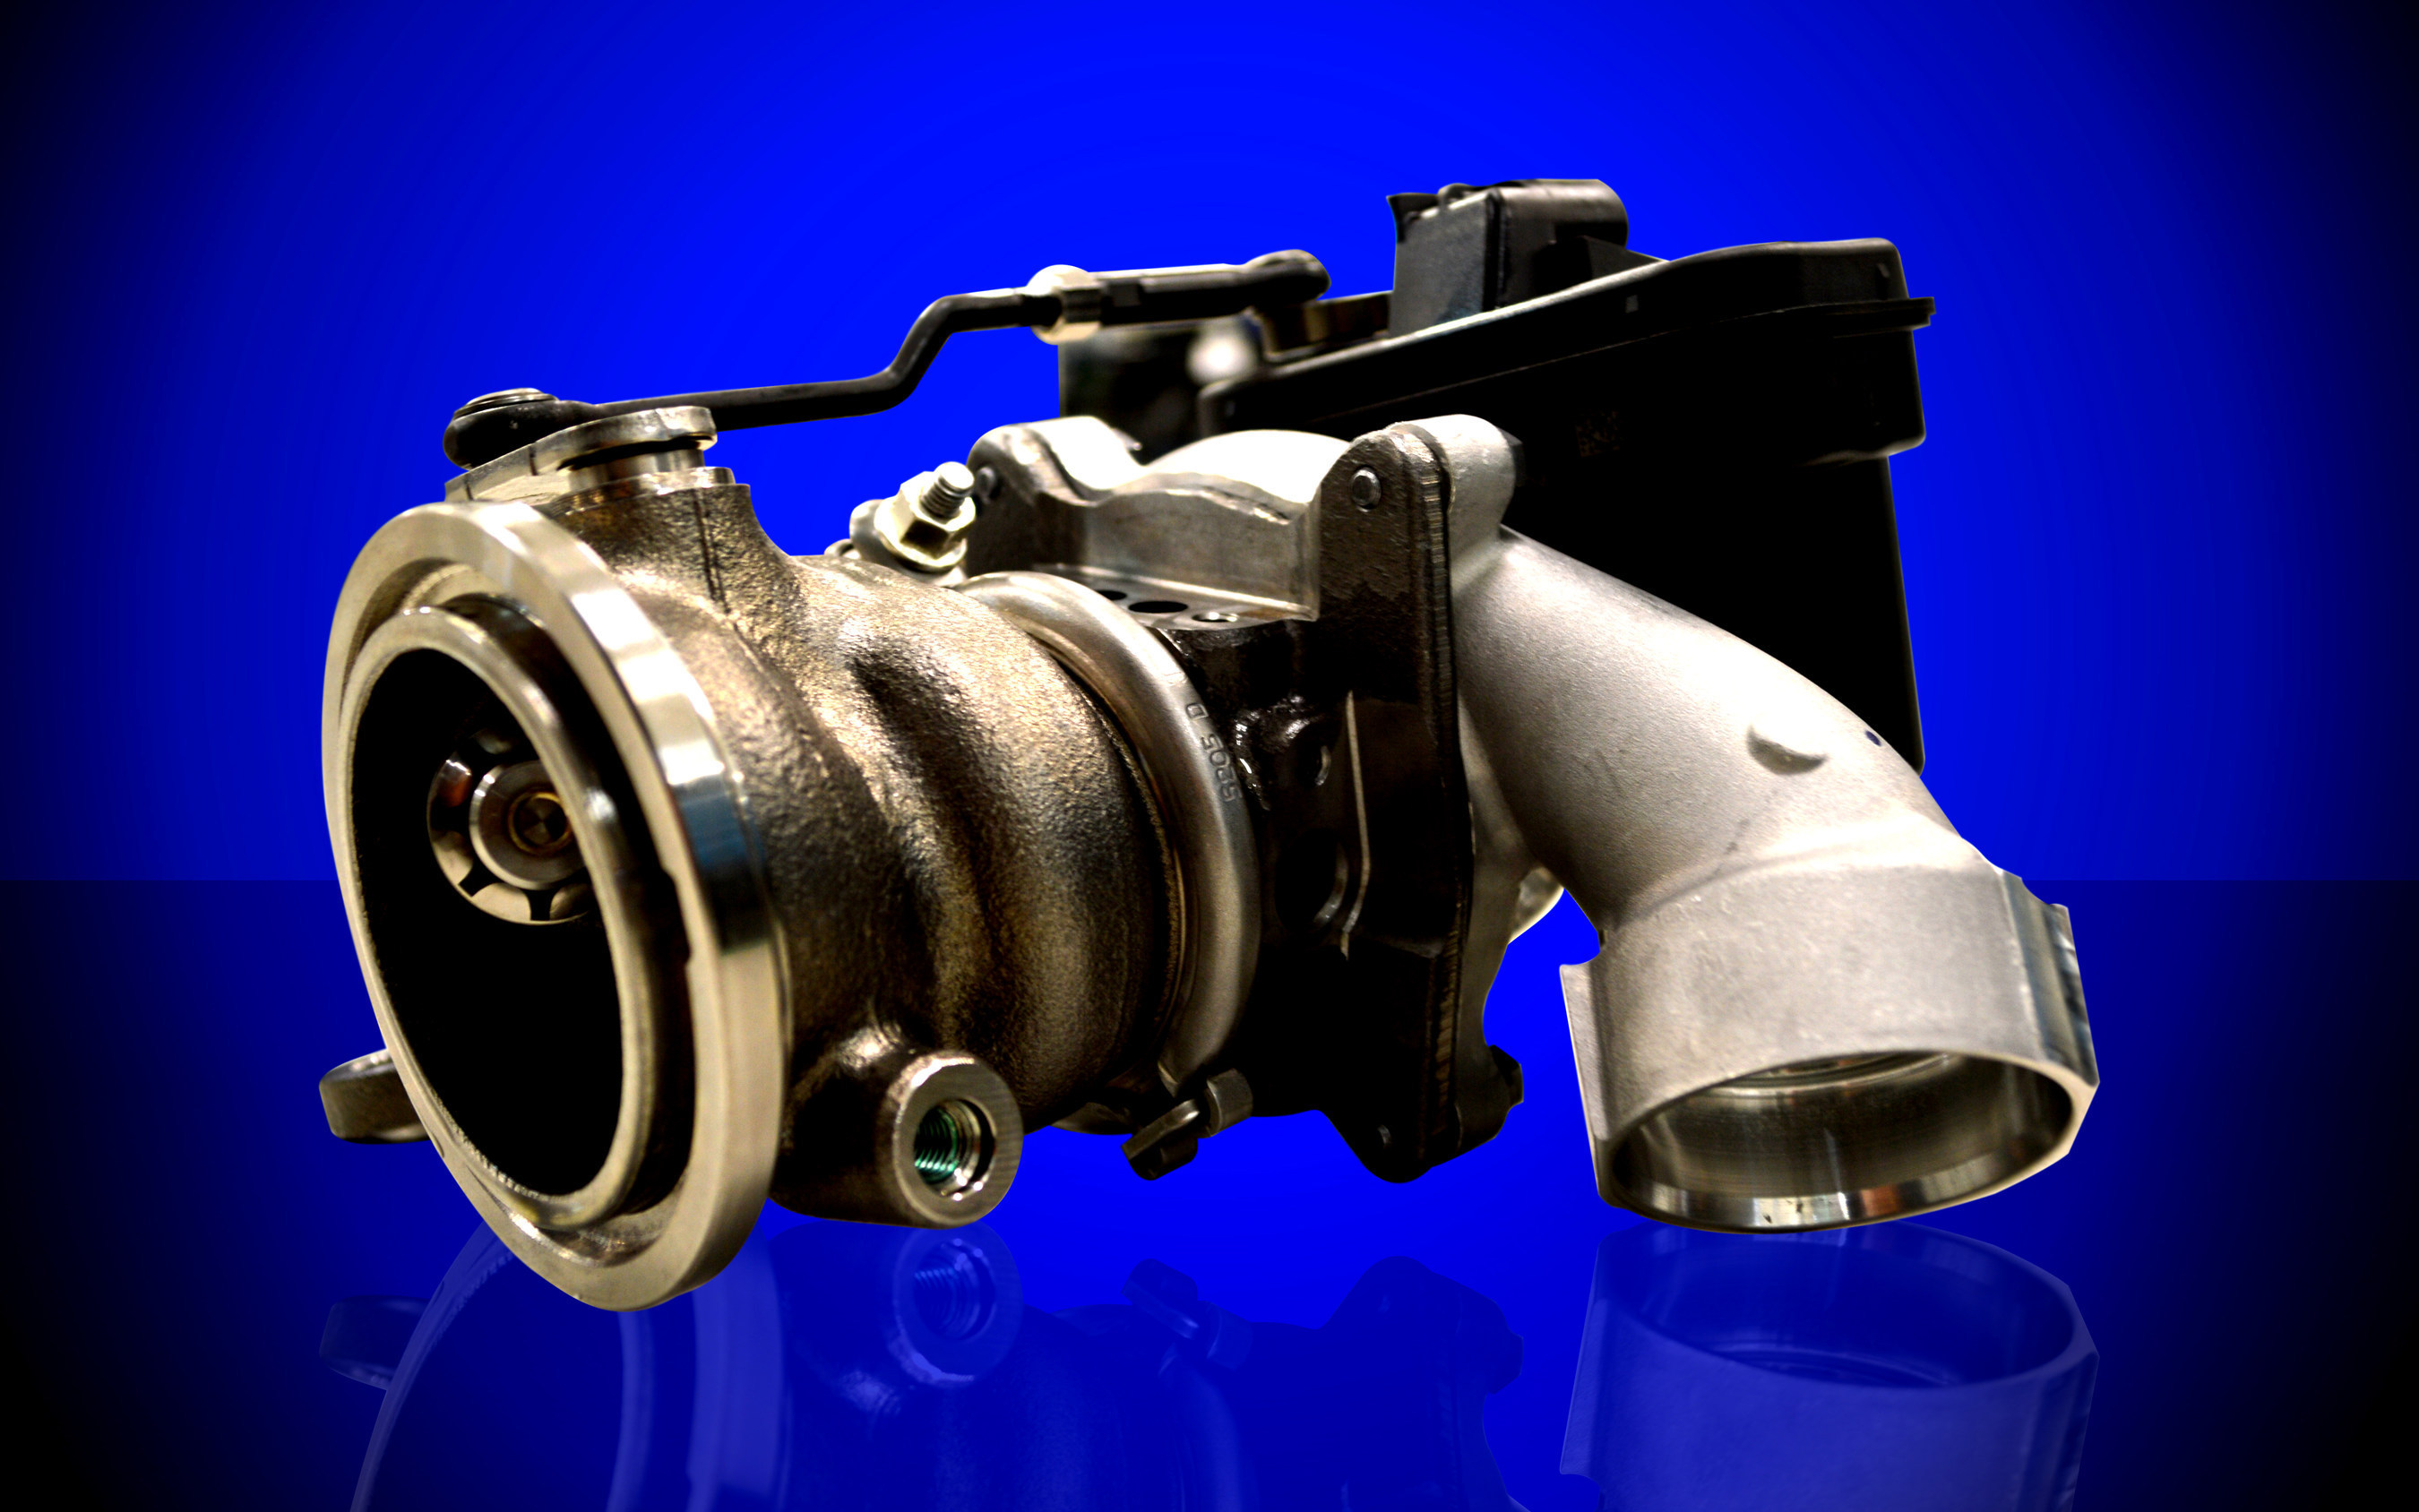 BorgWarner Flex Fuel turbocharger